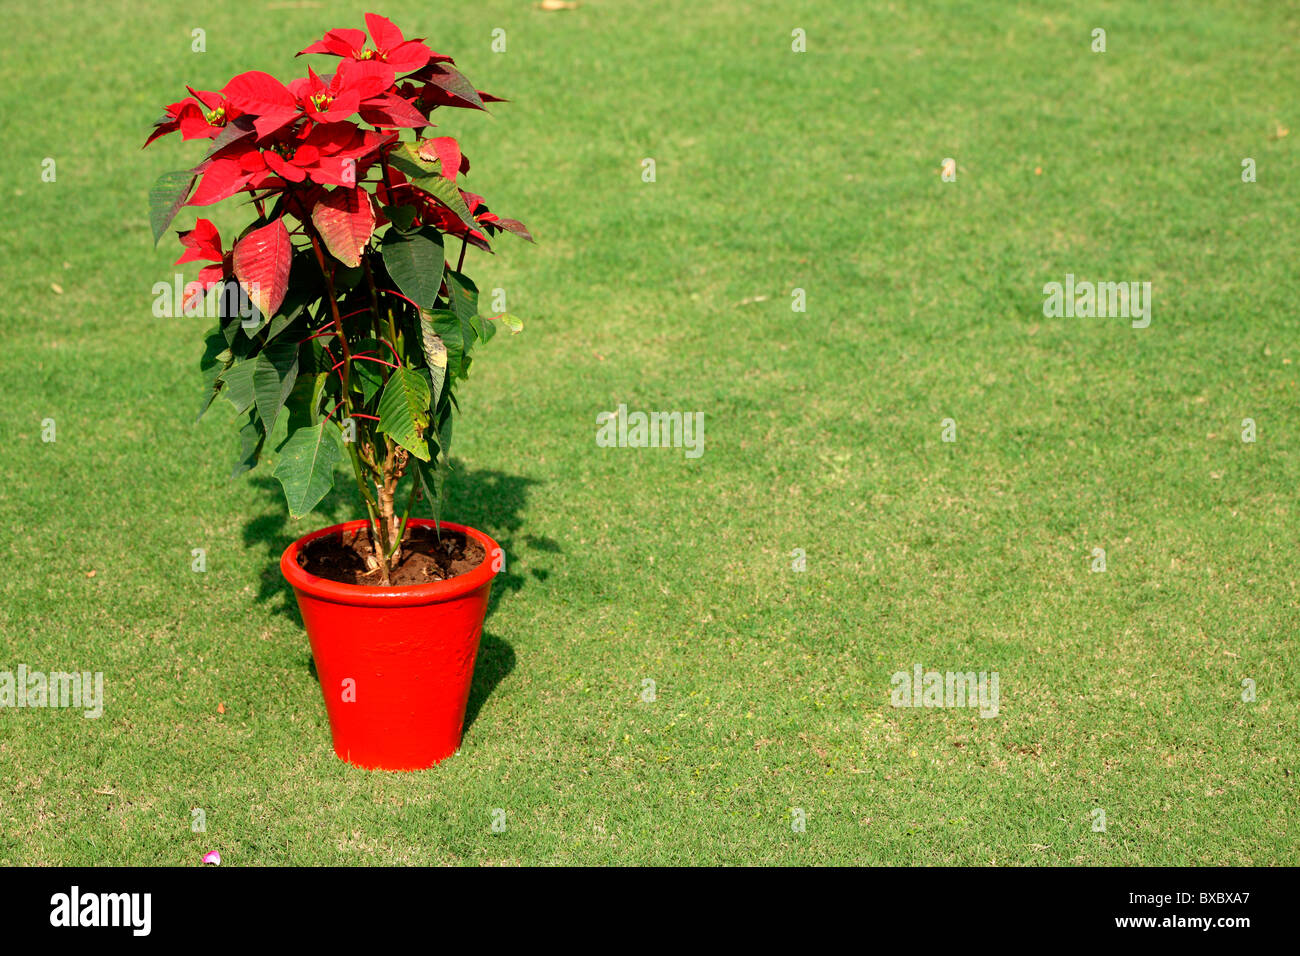 A red flower pot in green lawn - Stock Image